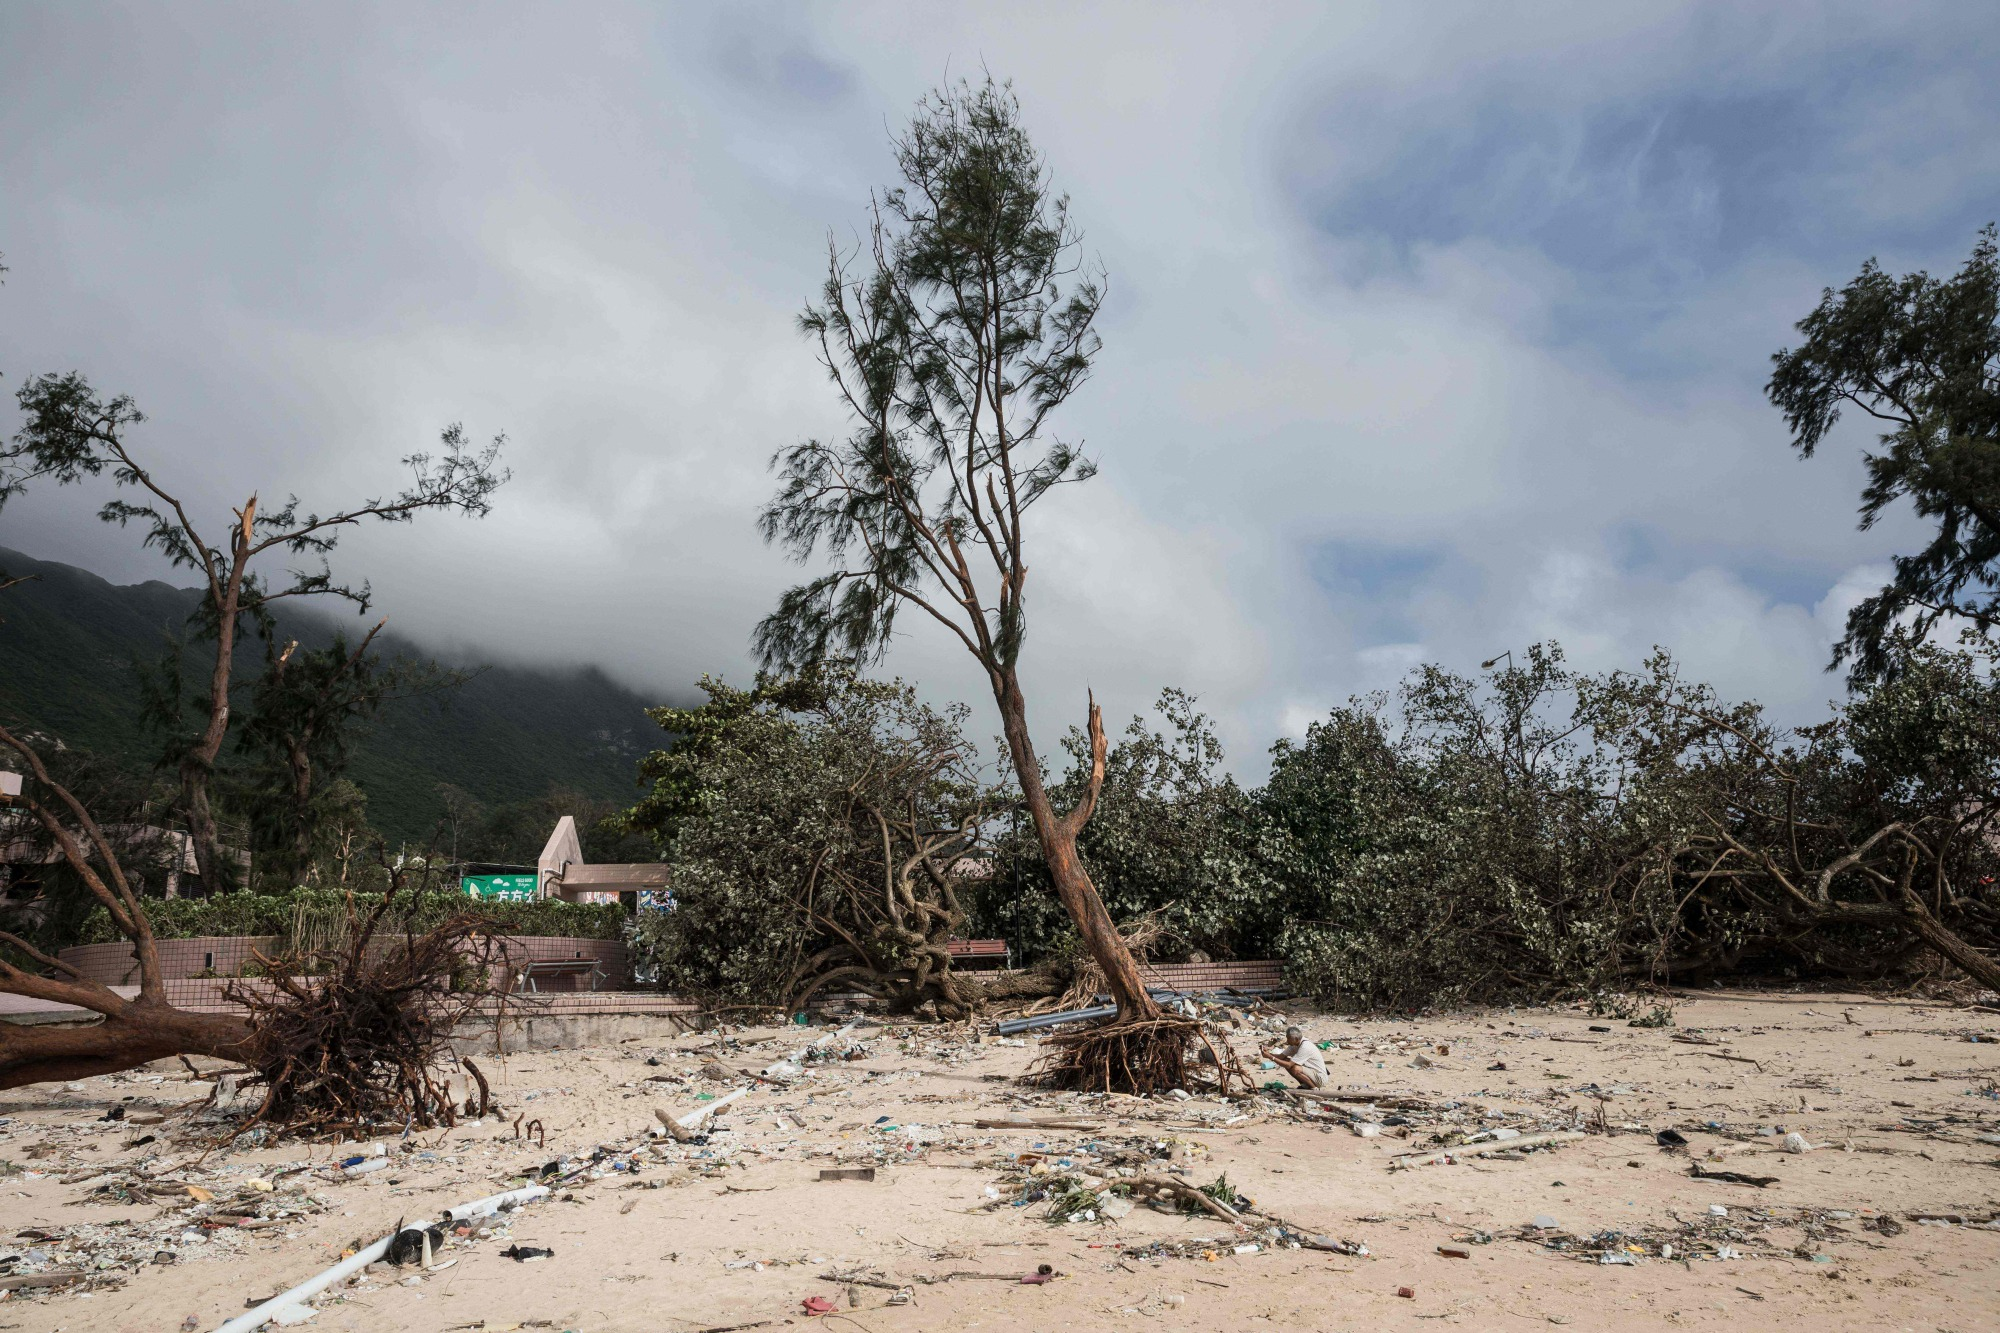 A man takes photographs of an uprooted tree on a beach on Sept. 18 in the aftermath of Typhoon Mangkhut in the coastal village of Shek O in Hong Kong. | AFP-JIJI